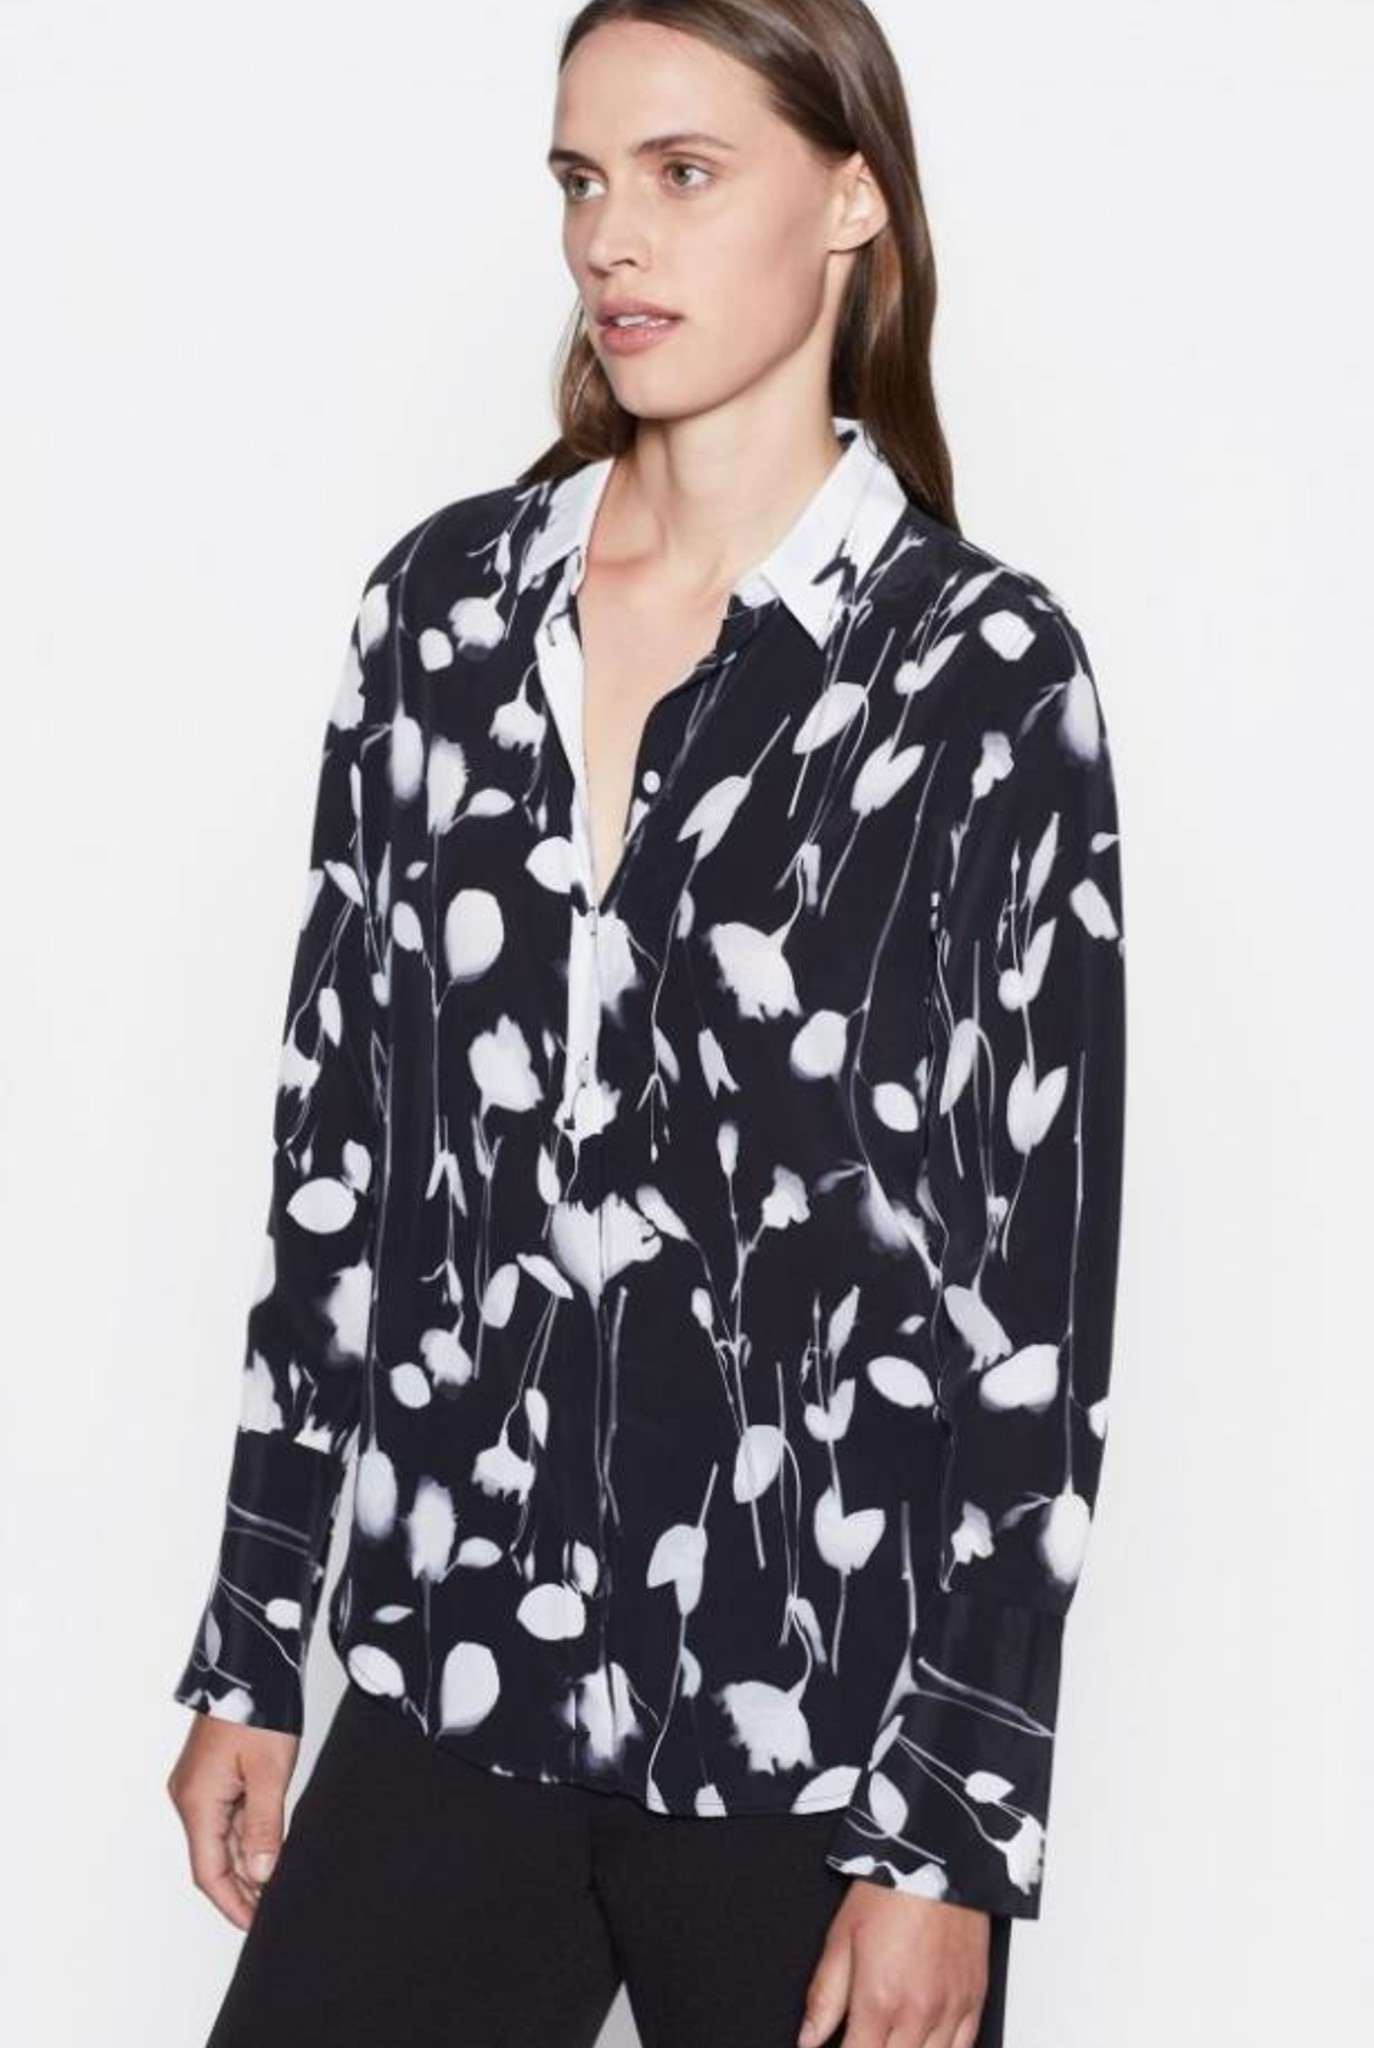 Eleonore blouse True Black flowers